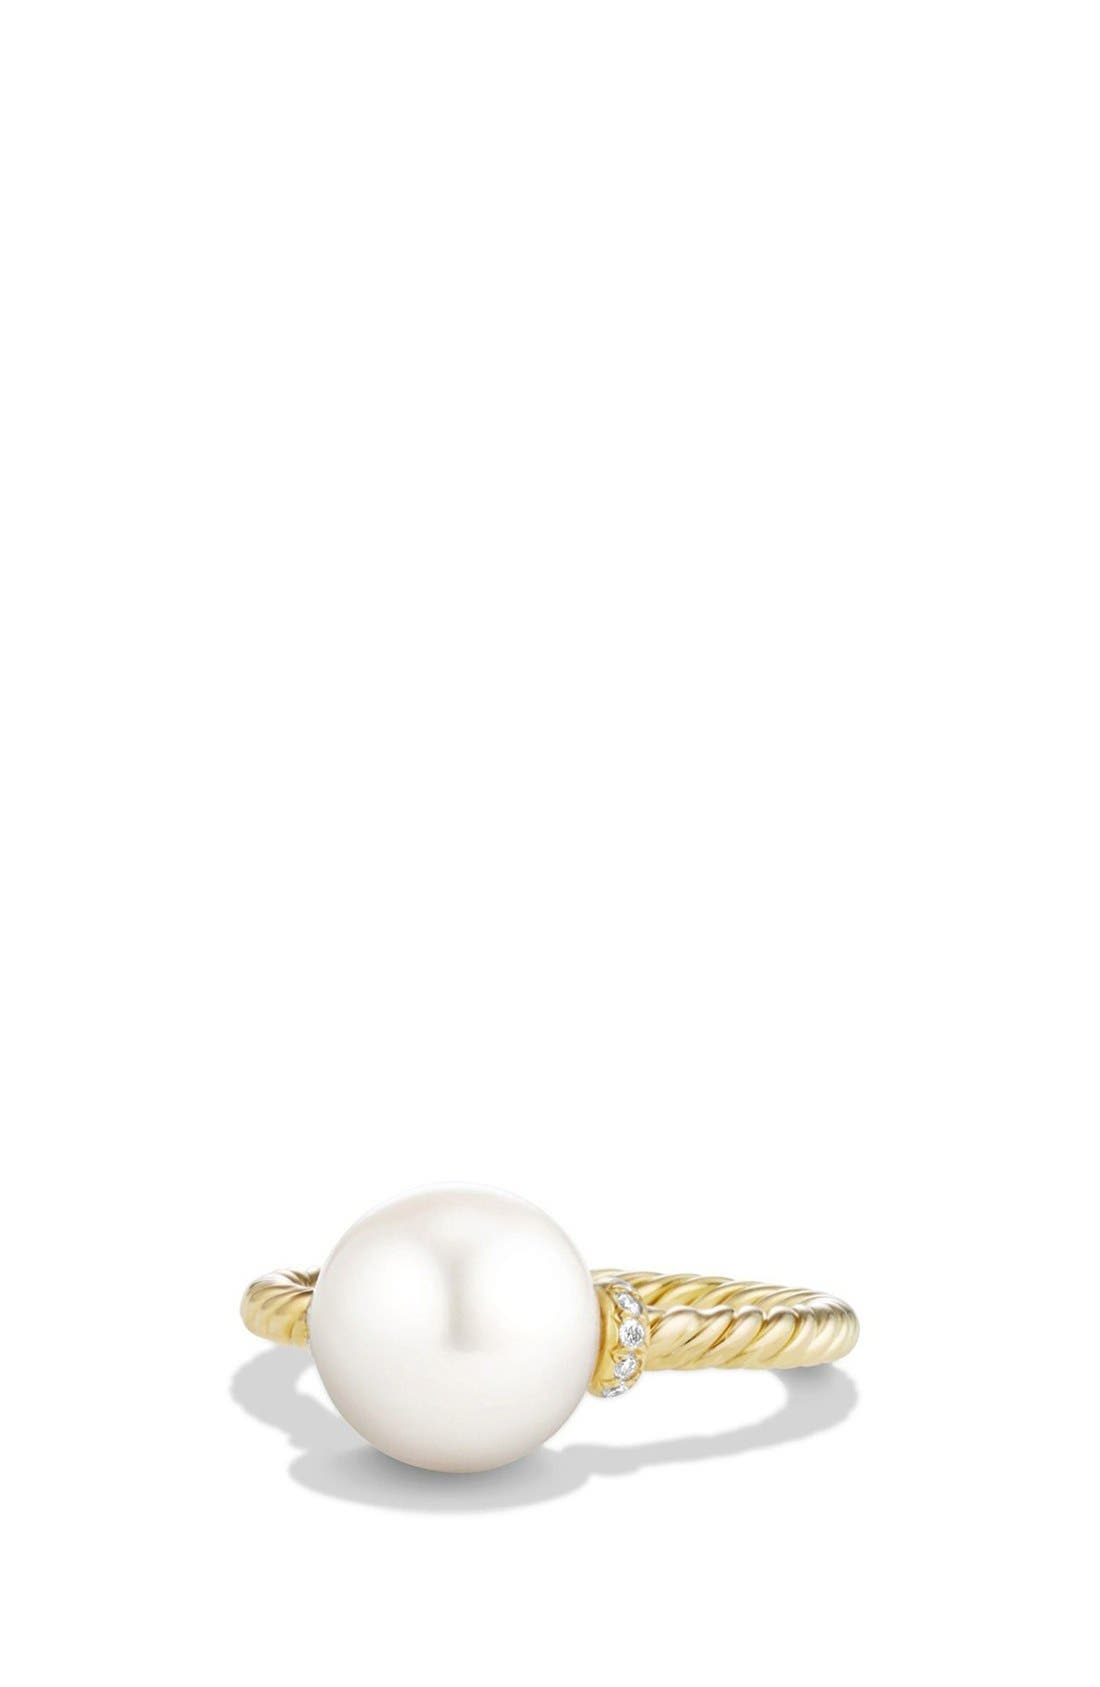 'Solari' Station Ring with Diamonds and Pearls,                         Main,                         color, Pearl